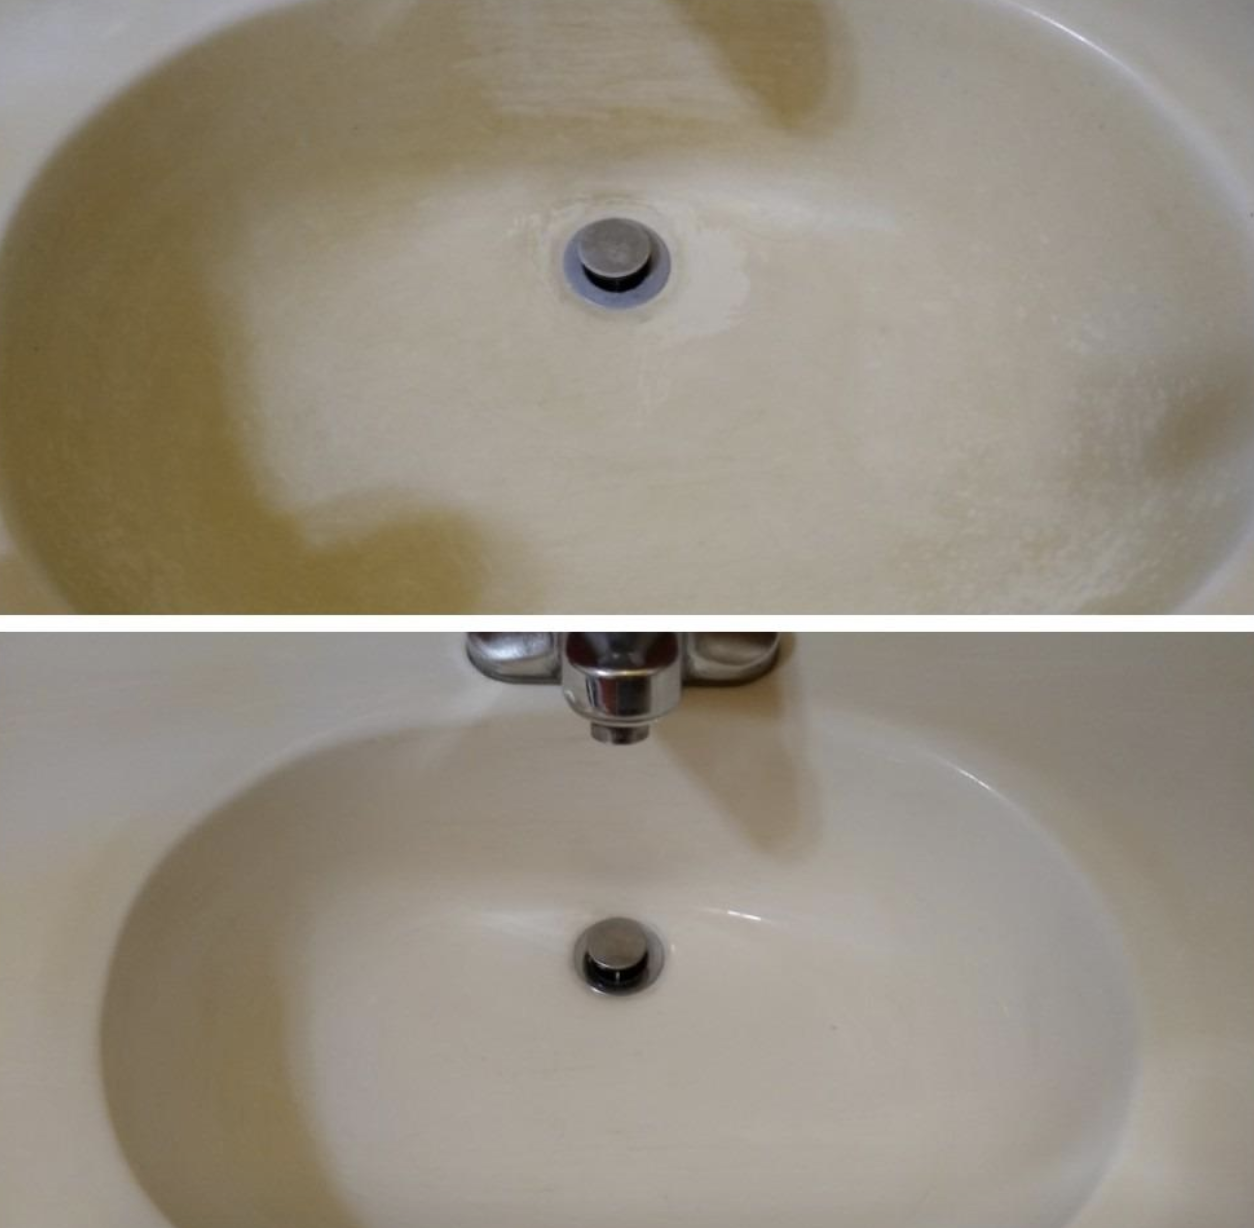 before and after photo of dirty porcelain sink on top and the sink looking clean on bottom